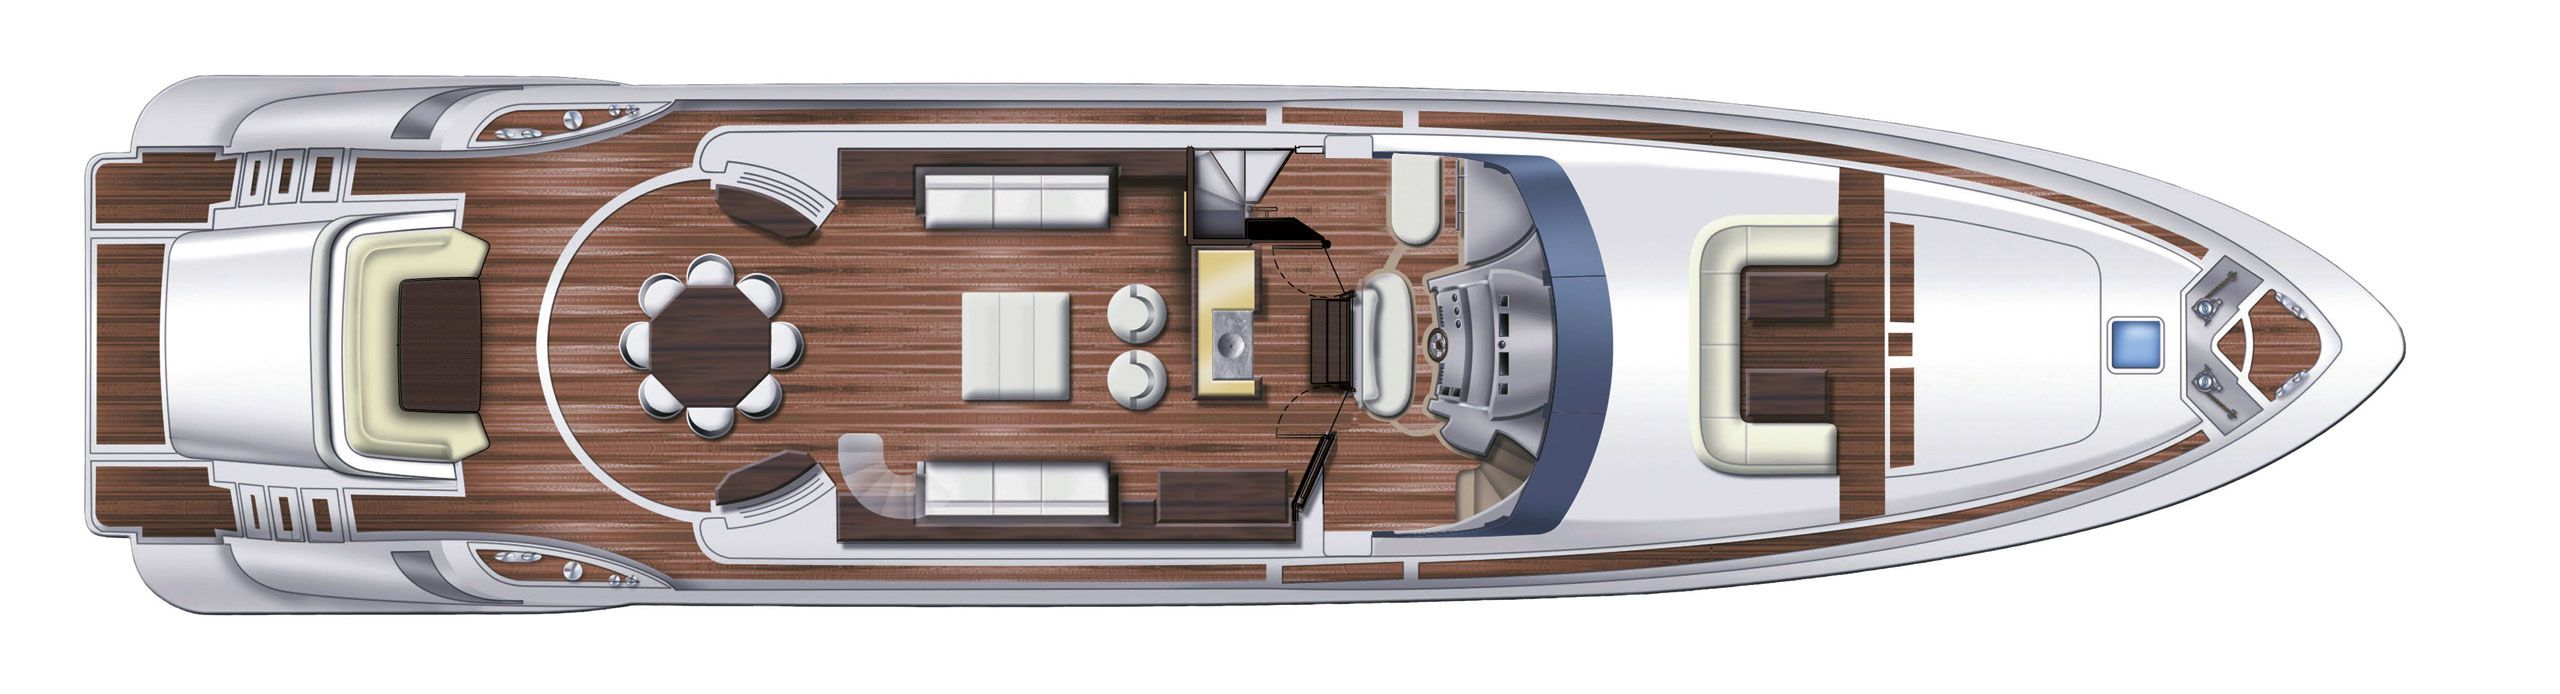 Azimut 100 leonardo cs yachting for Innenarchitekt yacht